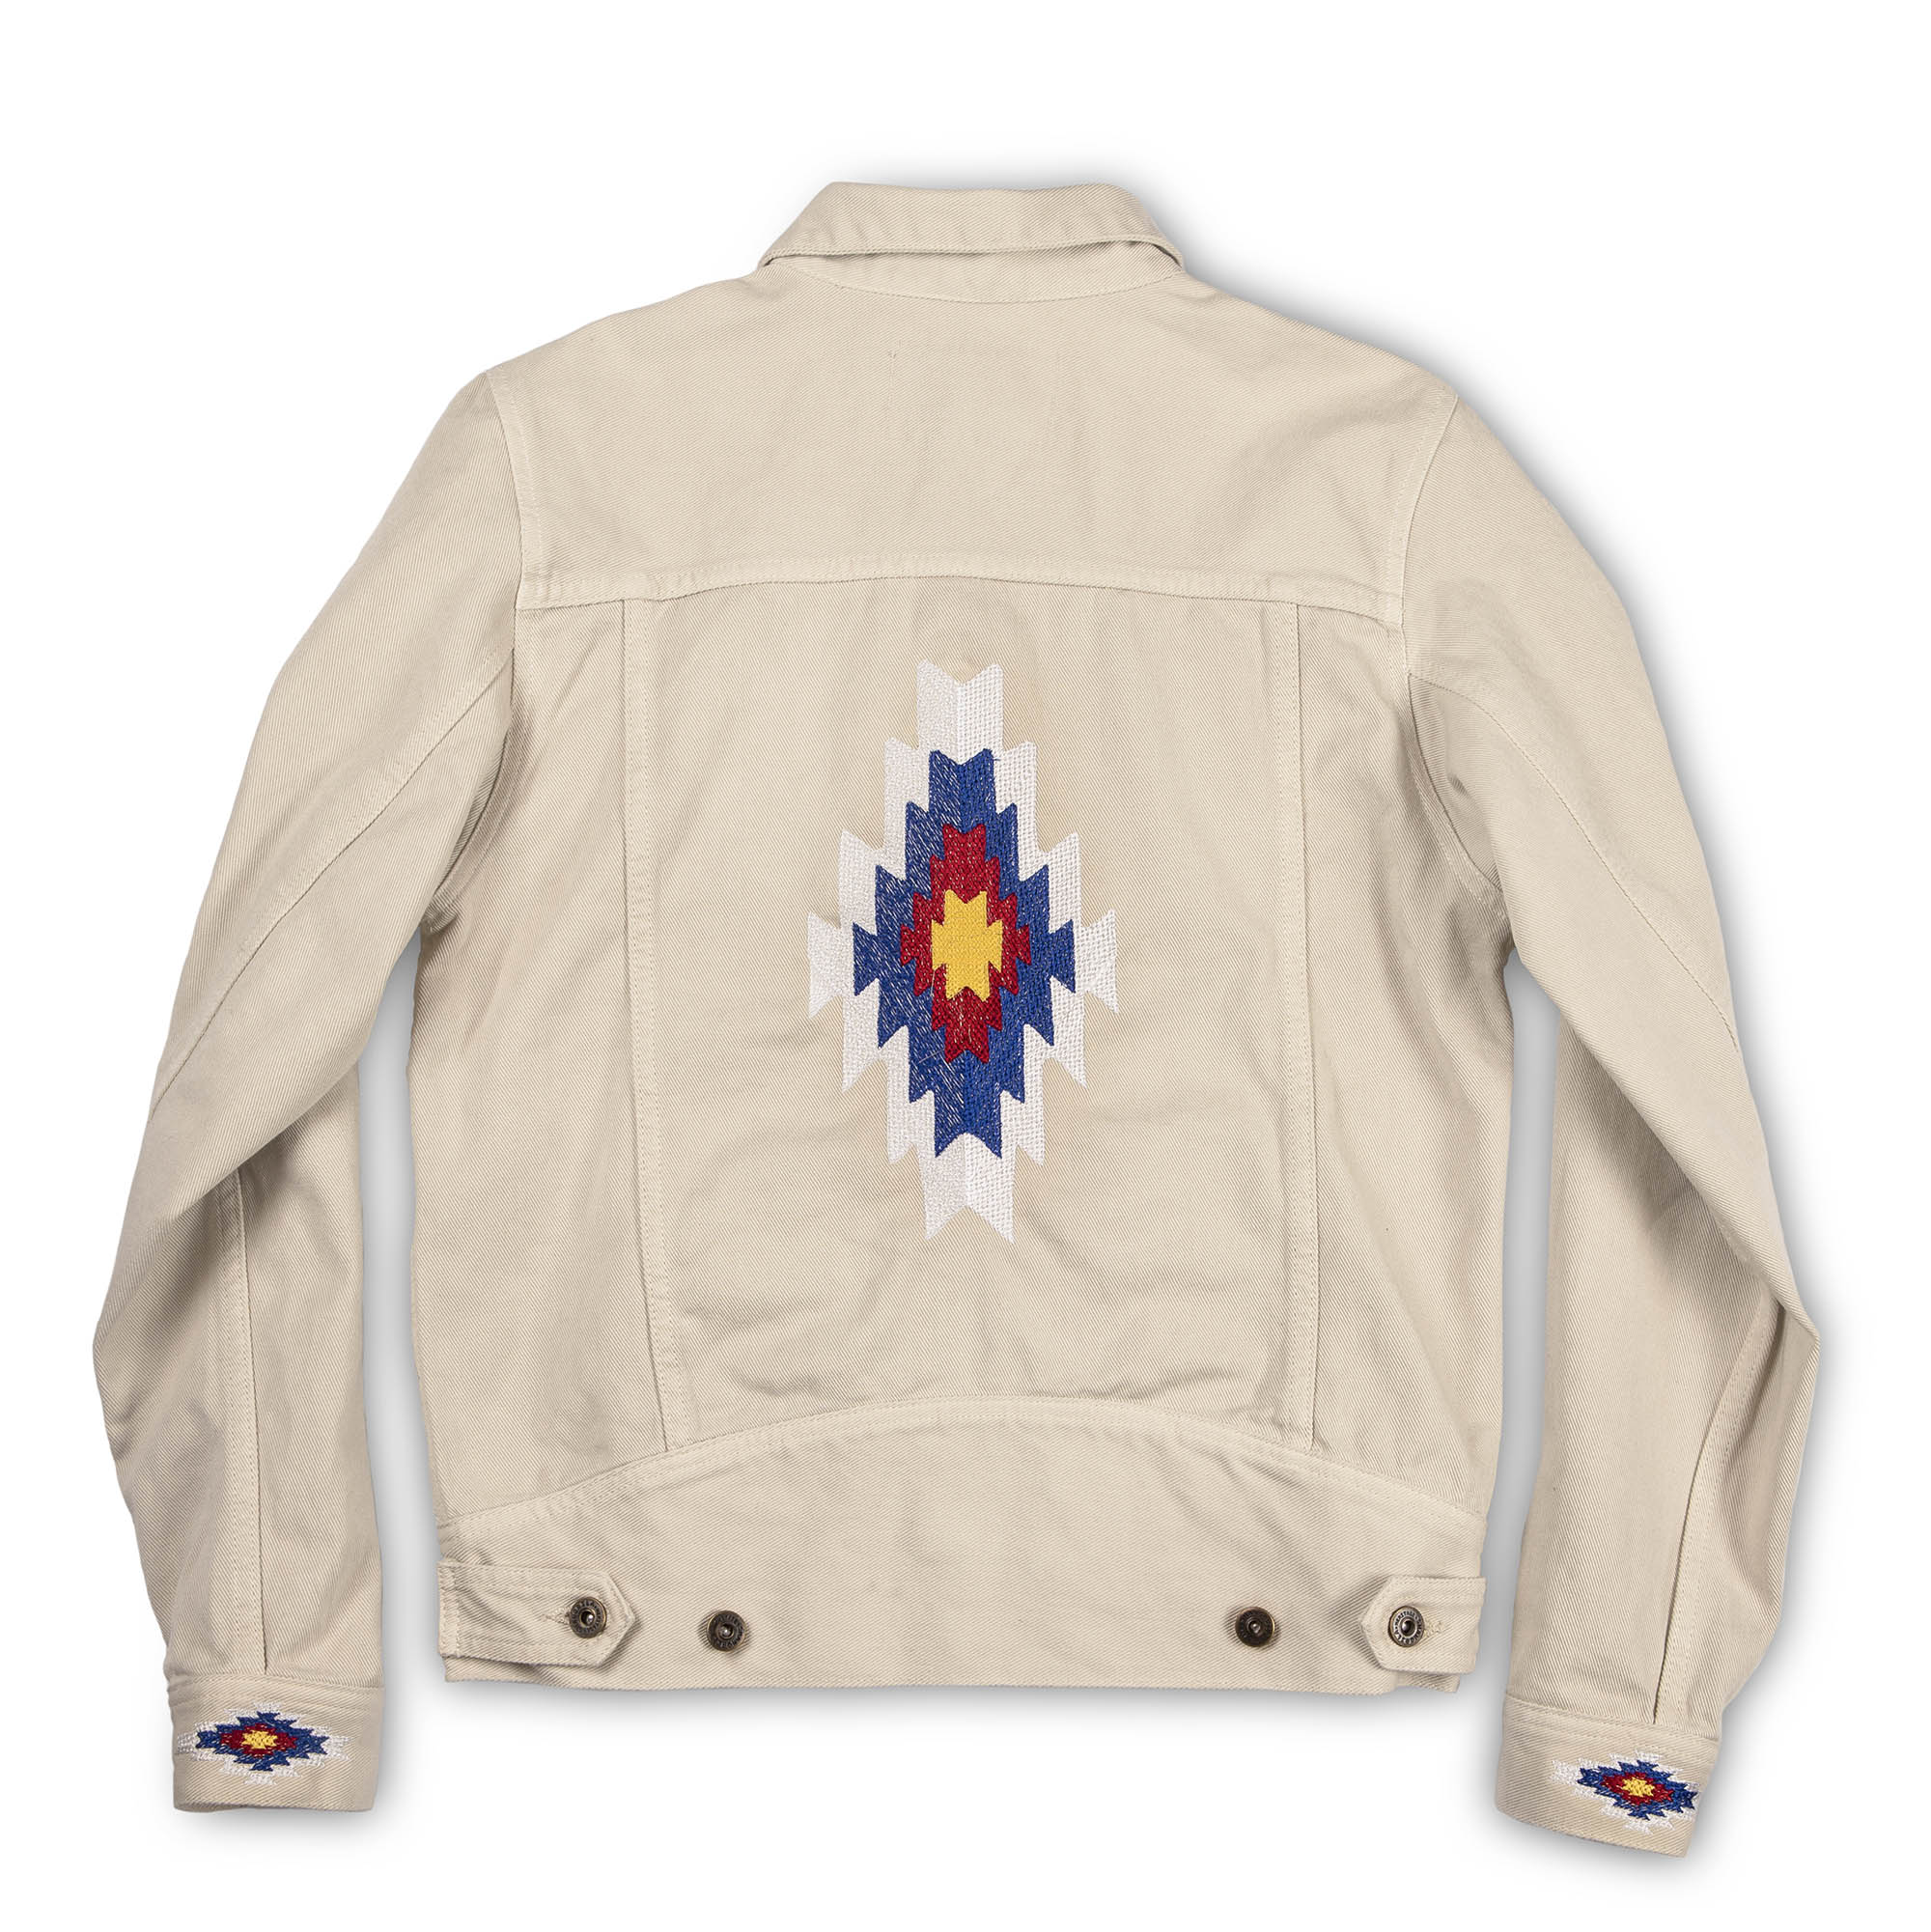 shangri-la-heritage-new-single-rider-sparviero-navajo-ivory-canvas-jacket-still-life-back